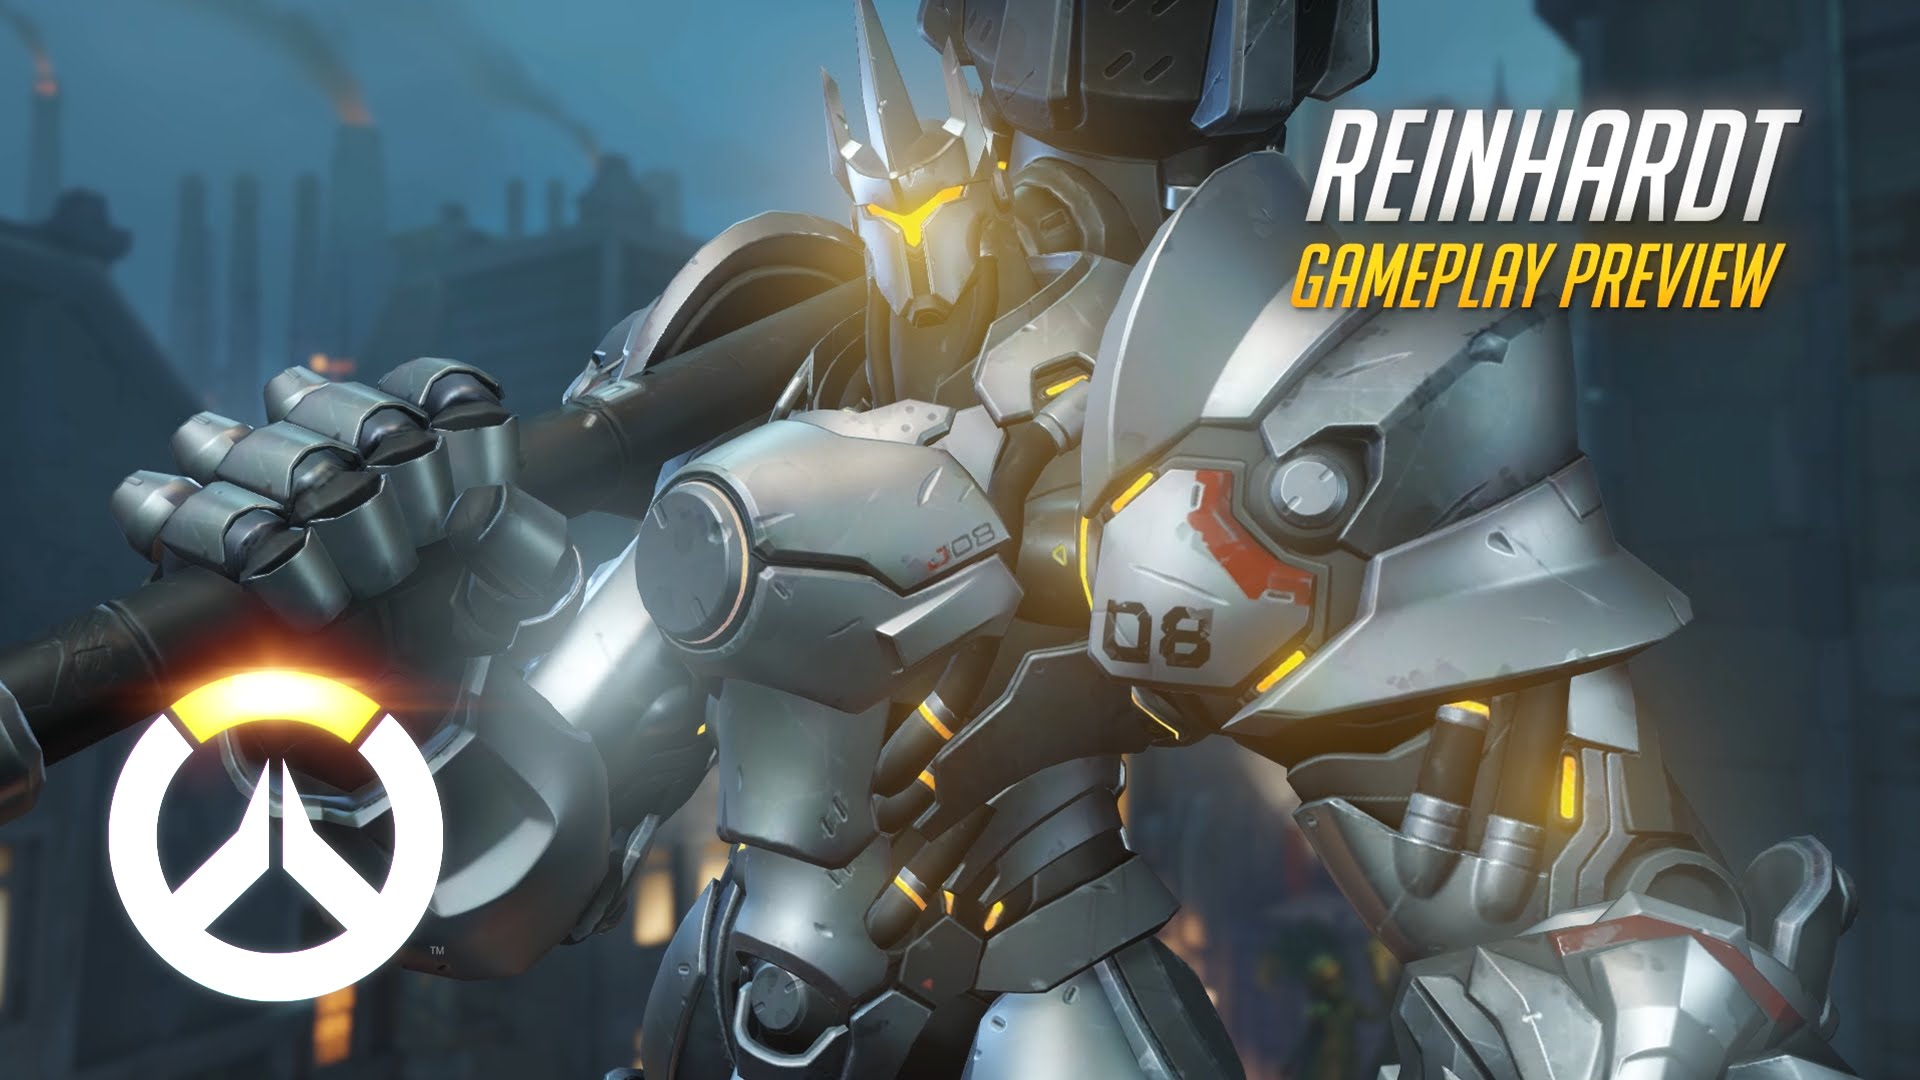 Overwatch Reinhardt Gameplay Preview